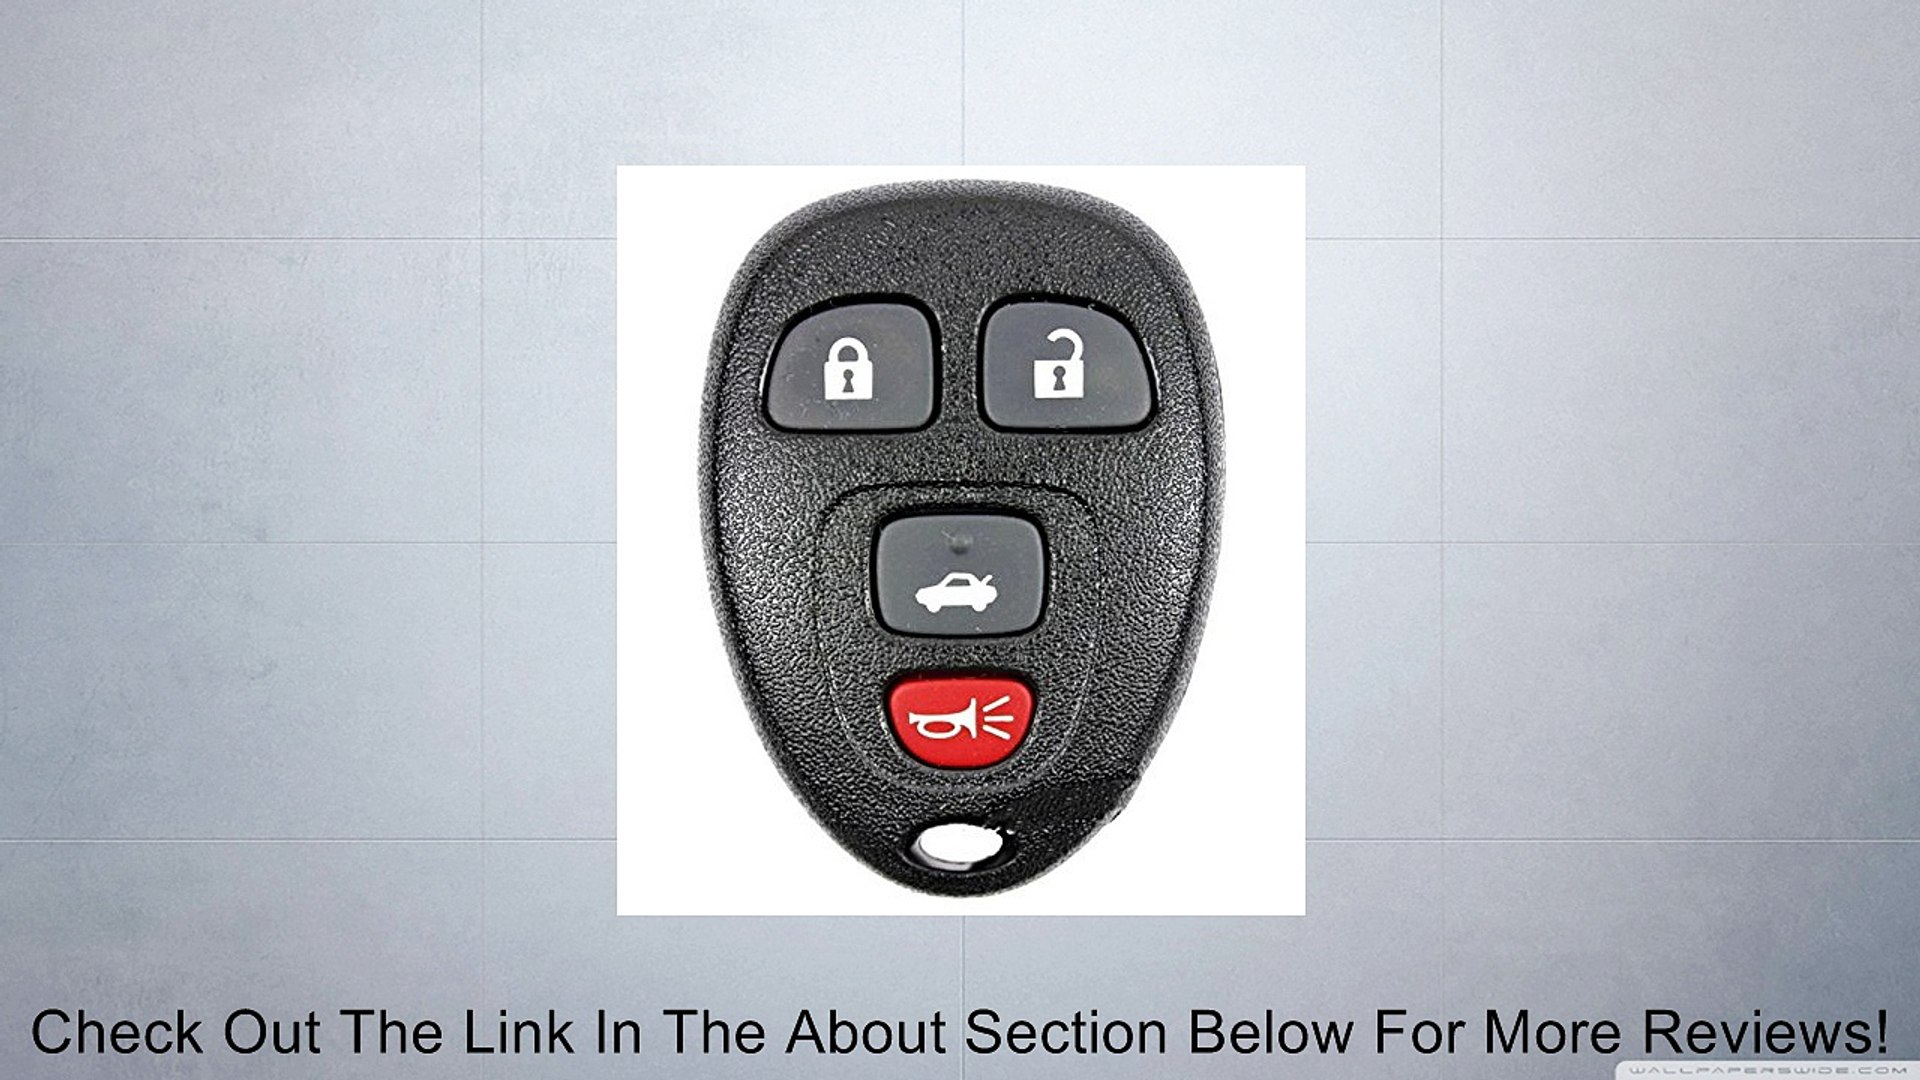 Parts & Accessories NEW PAIR KEYLESS REMOTE ENTRY KEY FOB CLICKER ALARM 15252034 4 BUTTON FOR GM